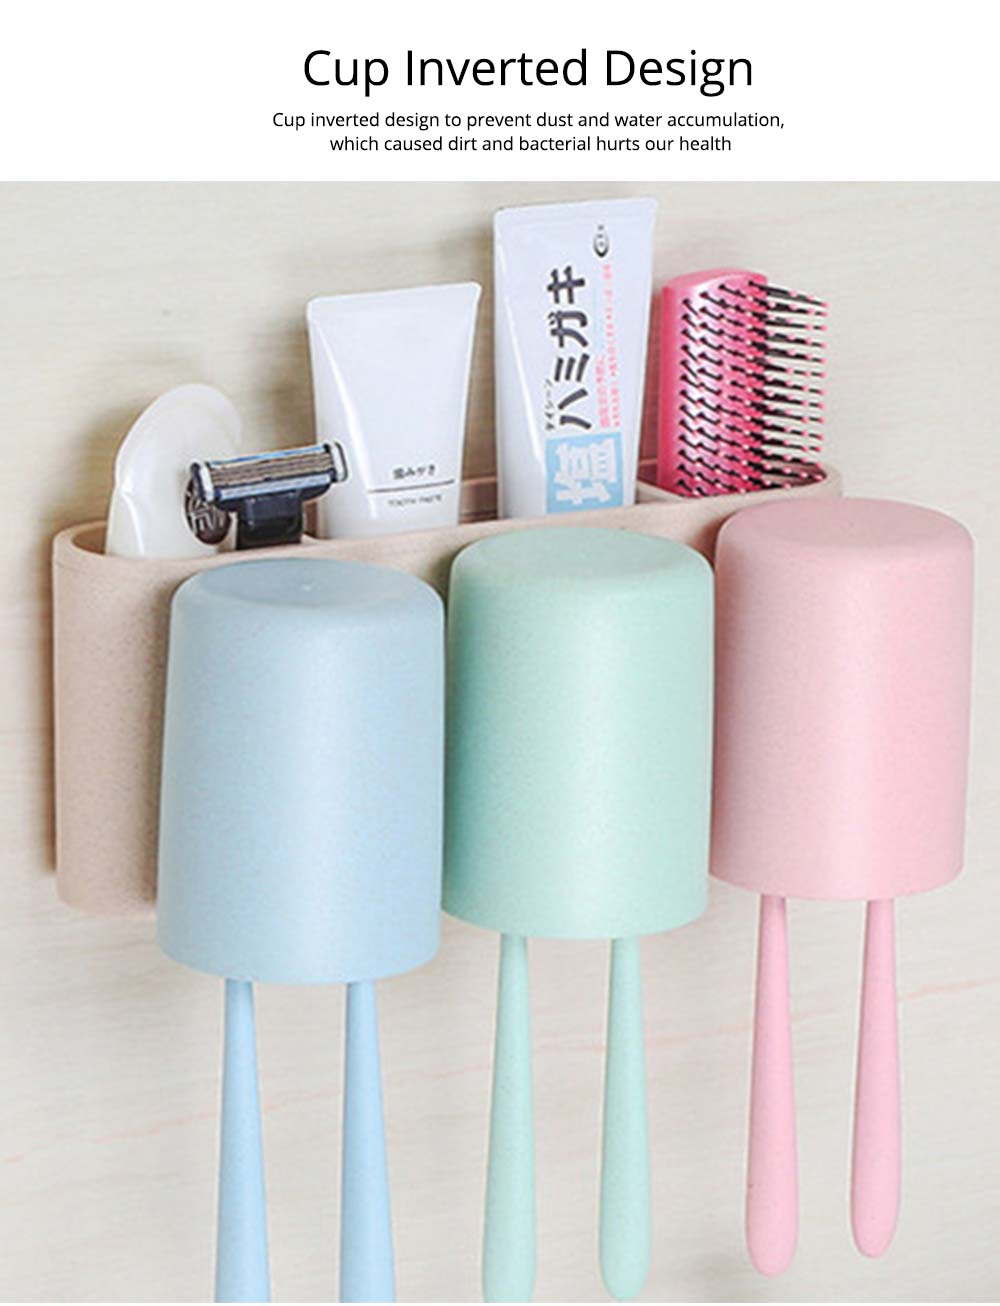 Toothbrush Holder Wall Mounted for Bathroom, Eco-friendly Degradable Wheat-straw Toothbrush Cups Set 6